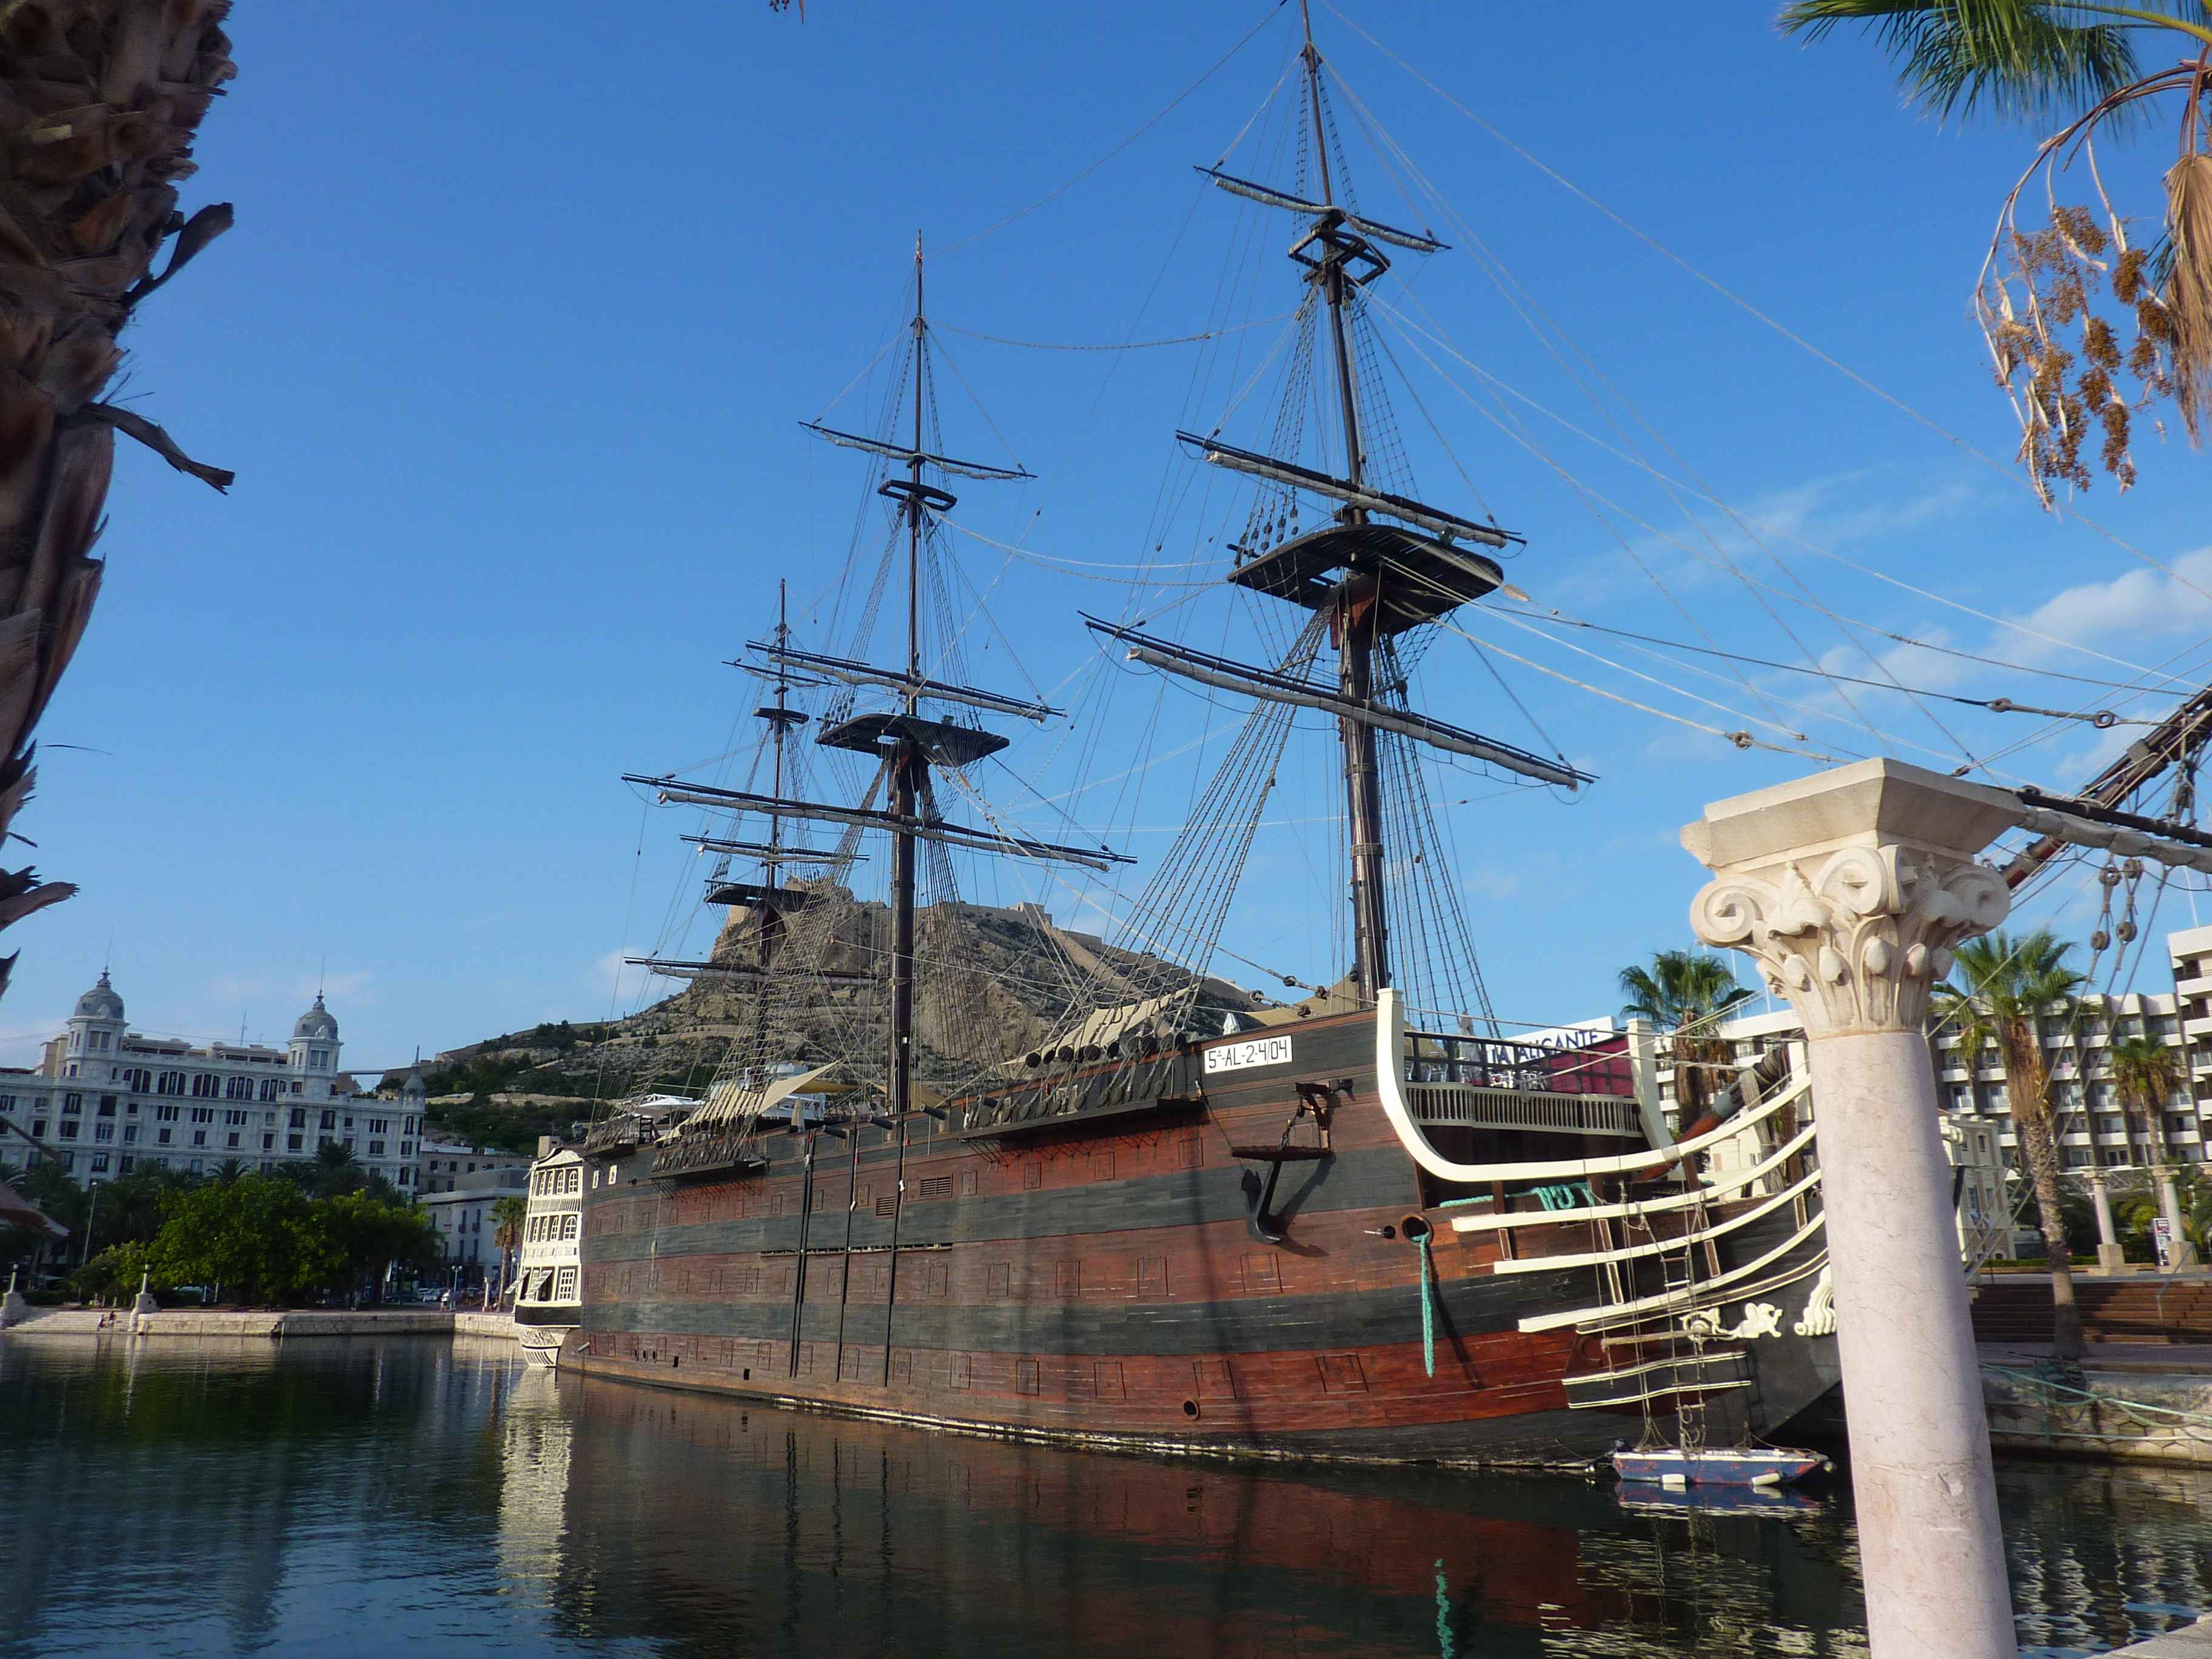 Grand Bateau Pirate Sur Le Port De Plaisance De Alicante en Images